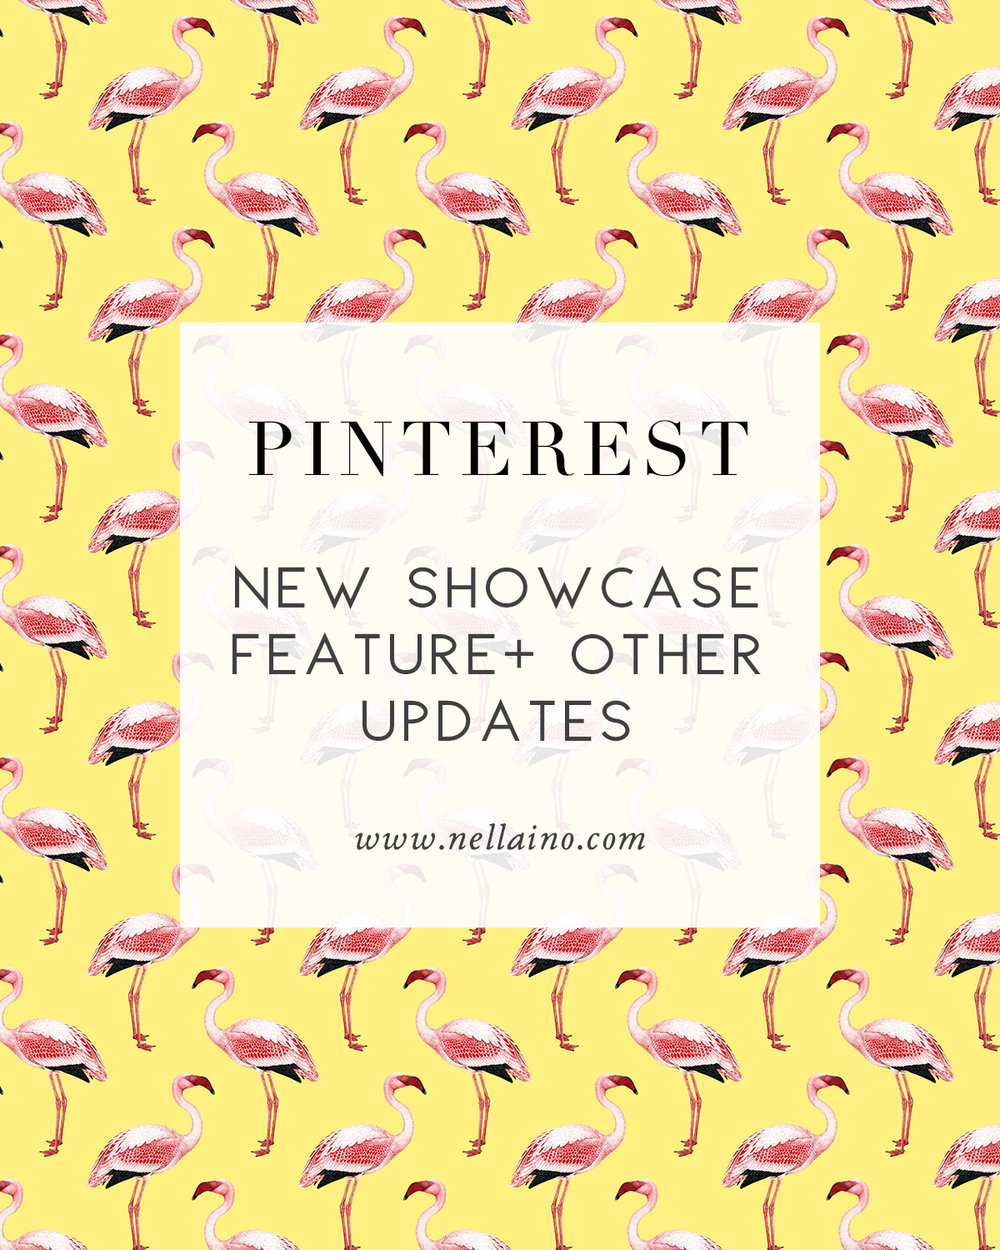 Pinterest-showcase-and-updates.jpg